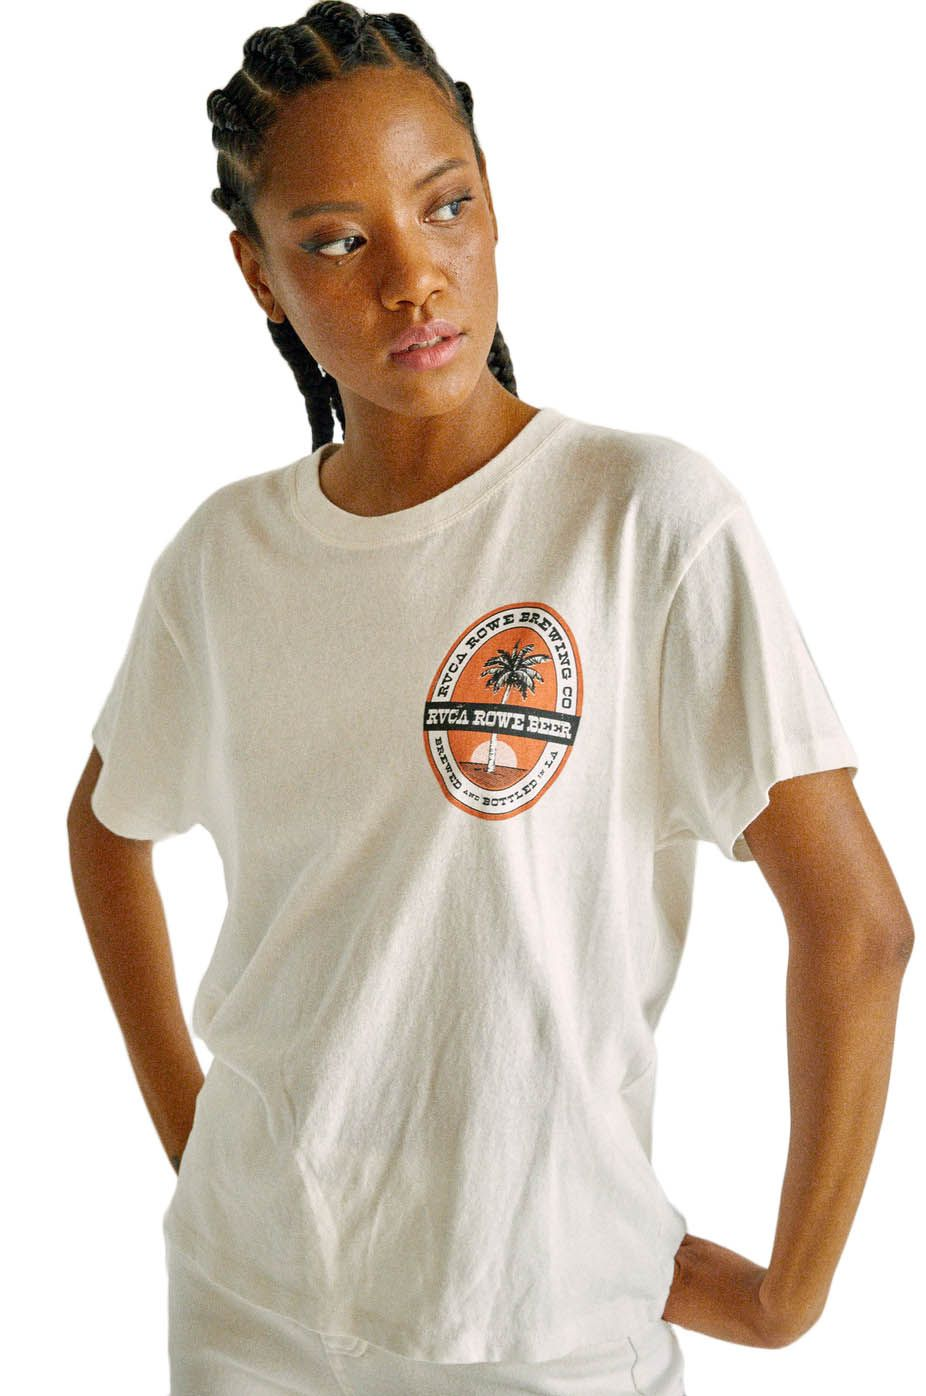 RVCA T-Shirt ROWE BREWING TEE CAMILLE ROWE Vintage White